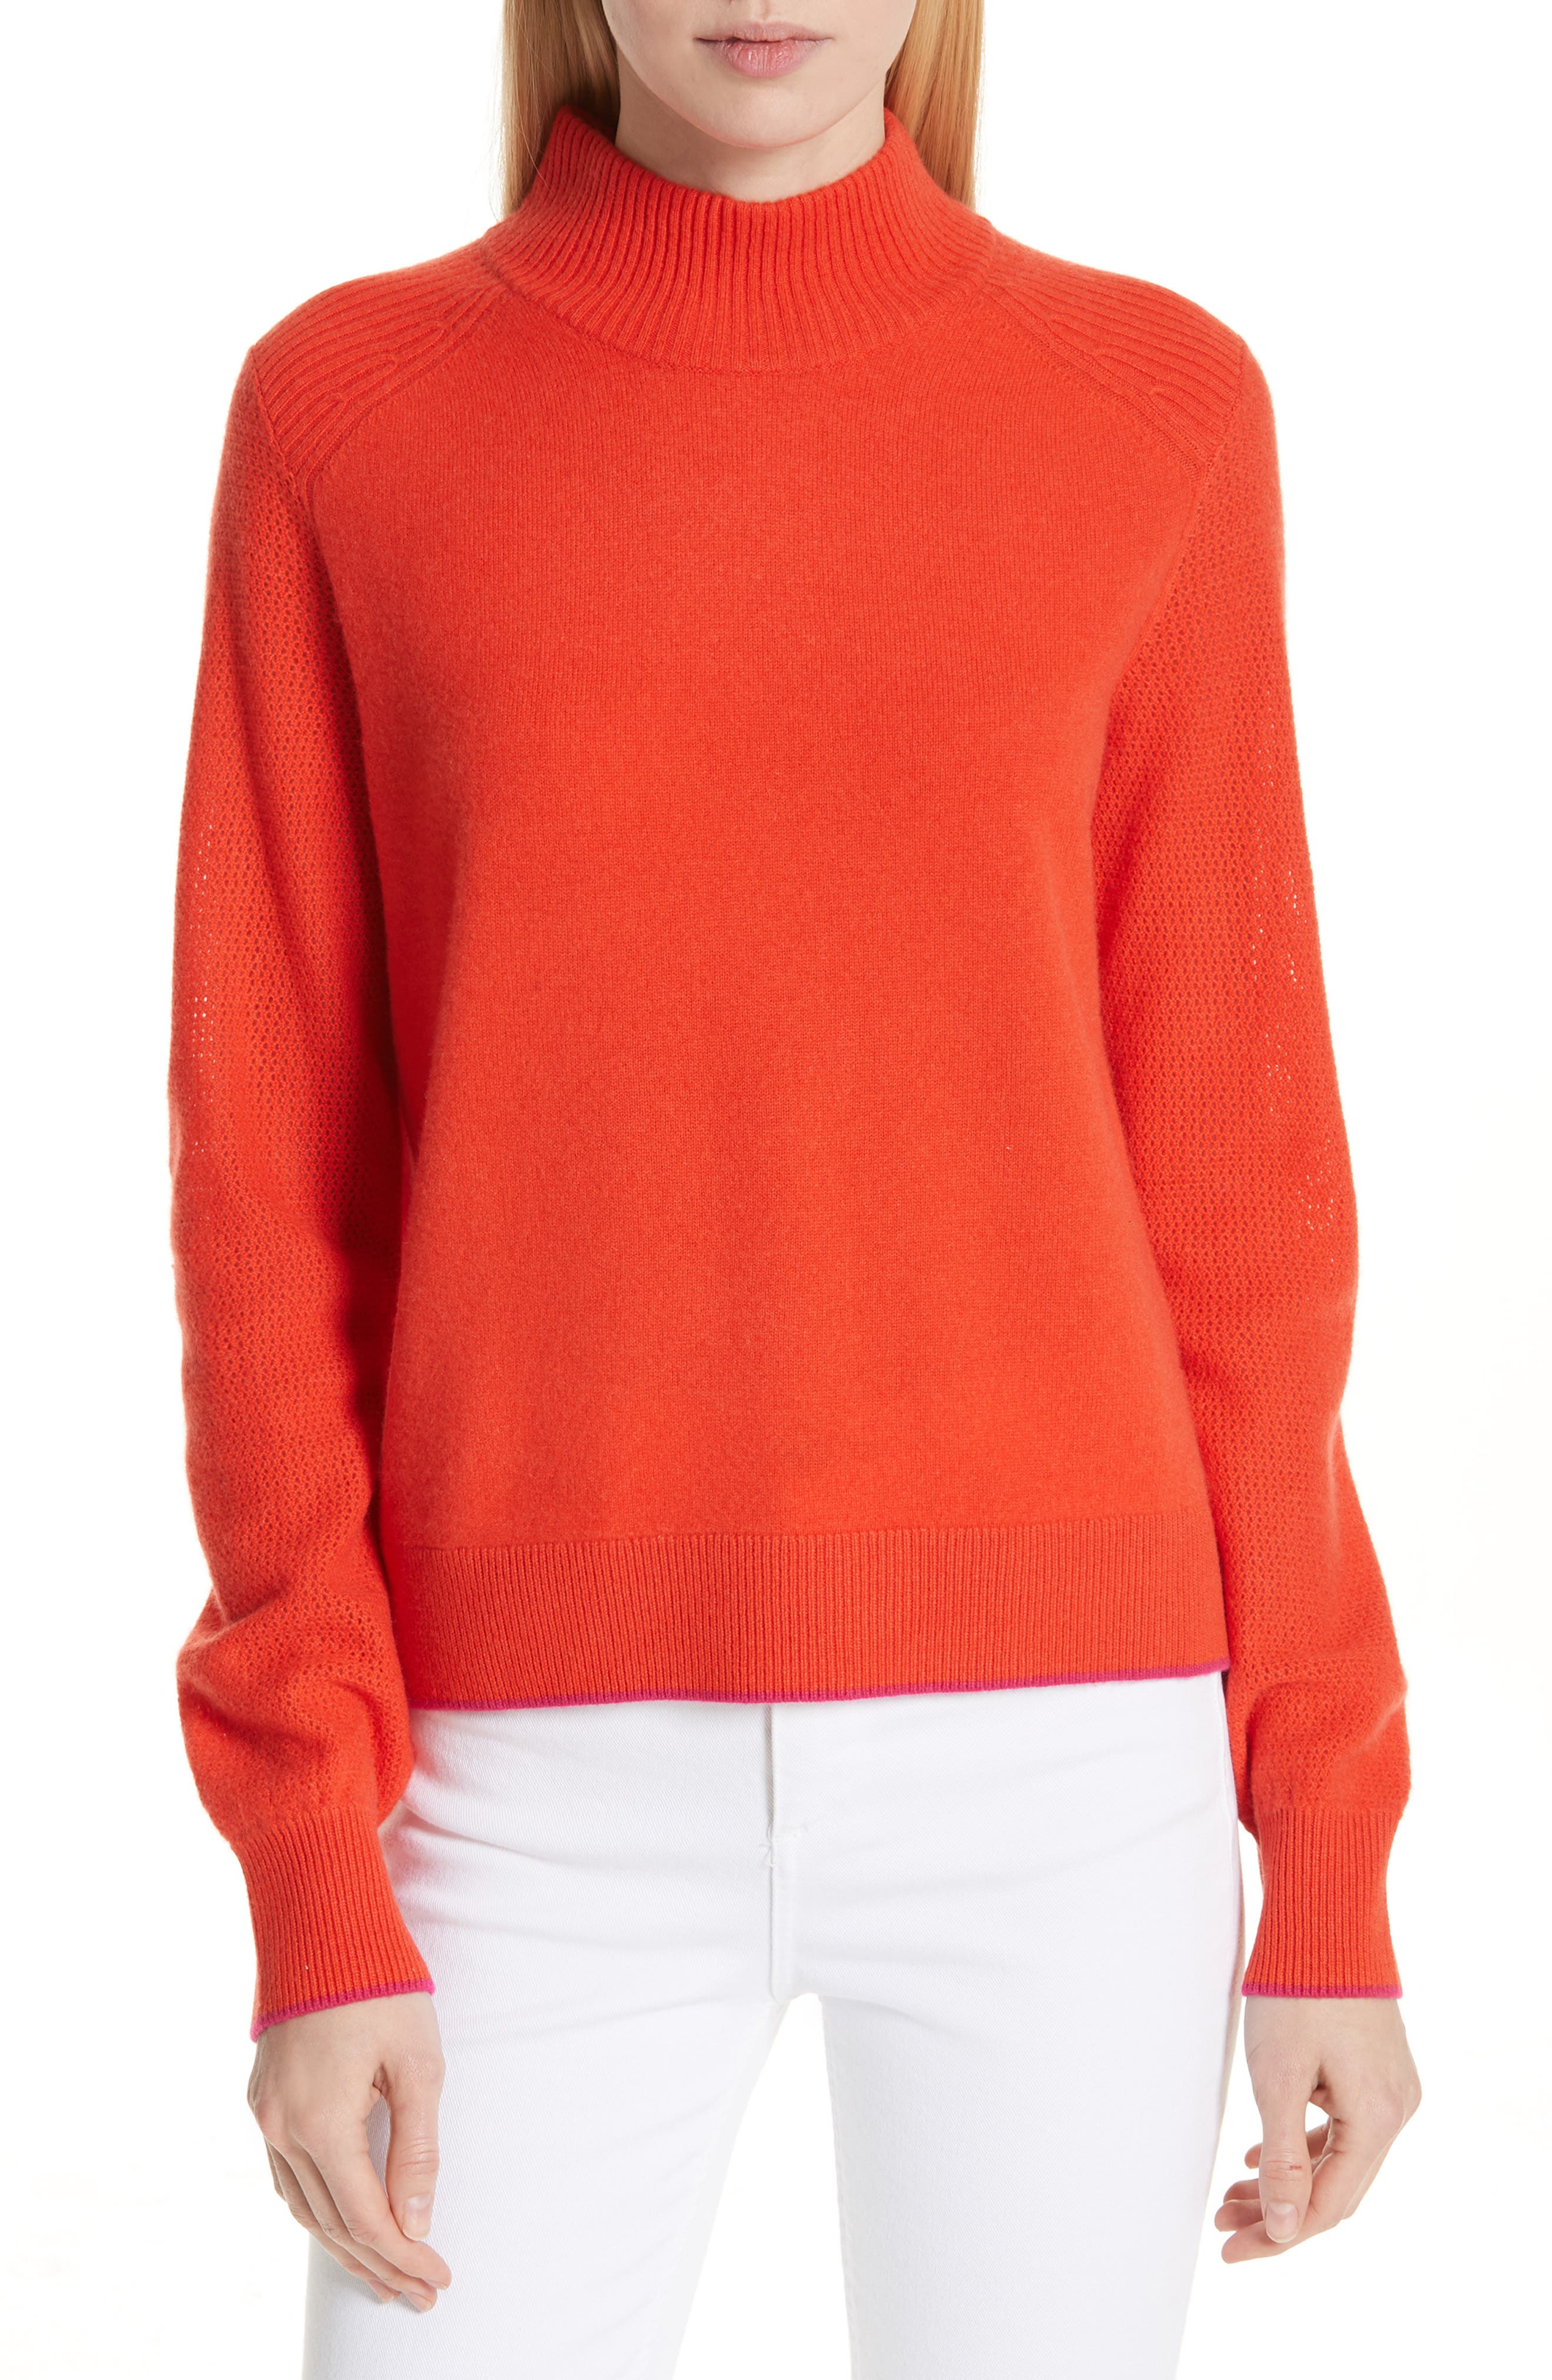 Yorke Cashmere Sweater,                             Main thumbnail 1, color,                             RED